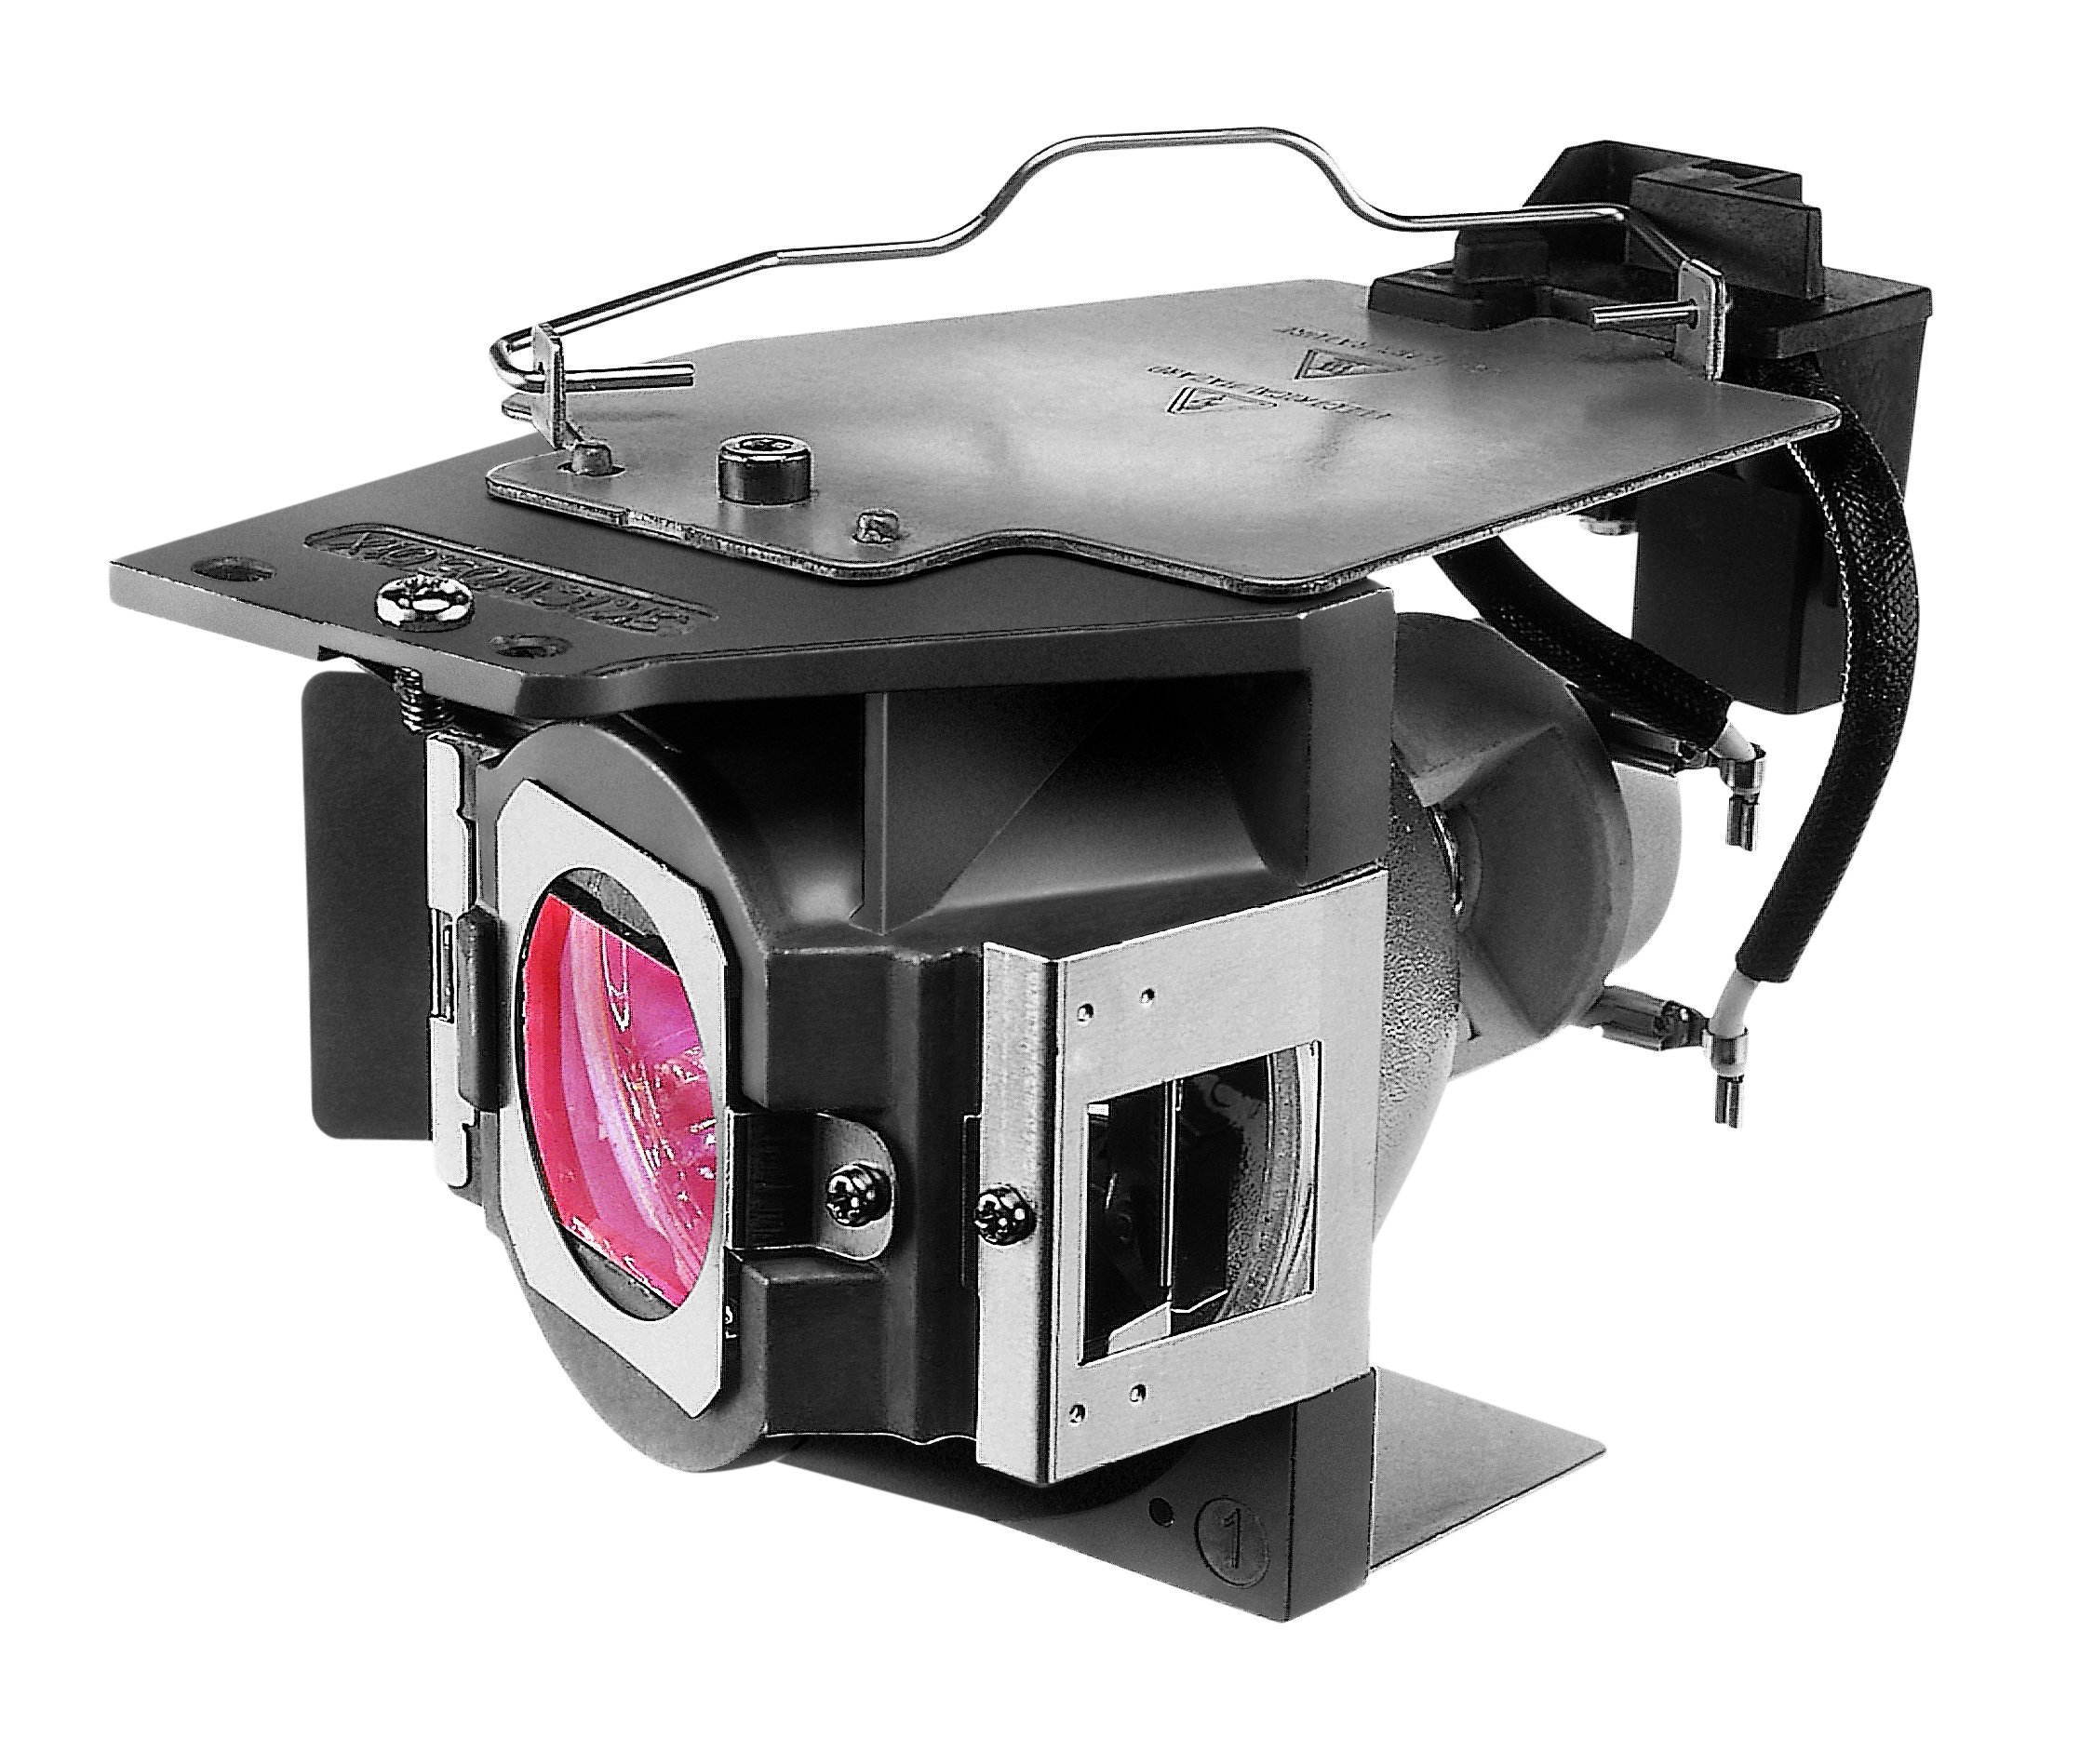 BenQ 5J.J6P05.001 Replacement Lamp for MW721 Projector